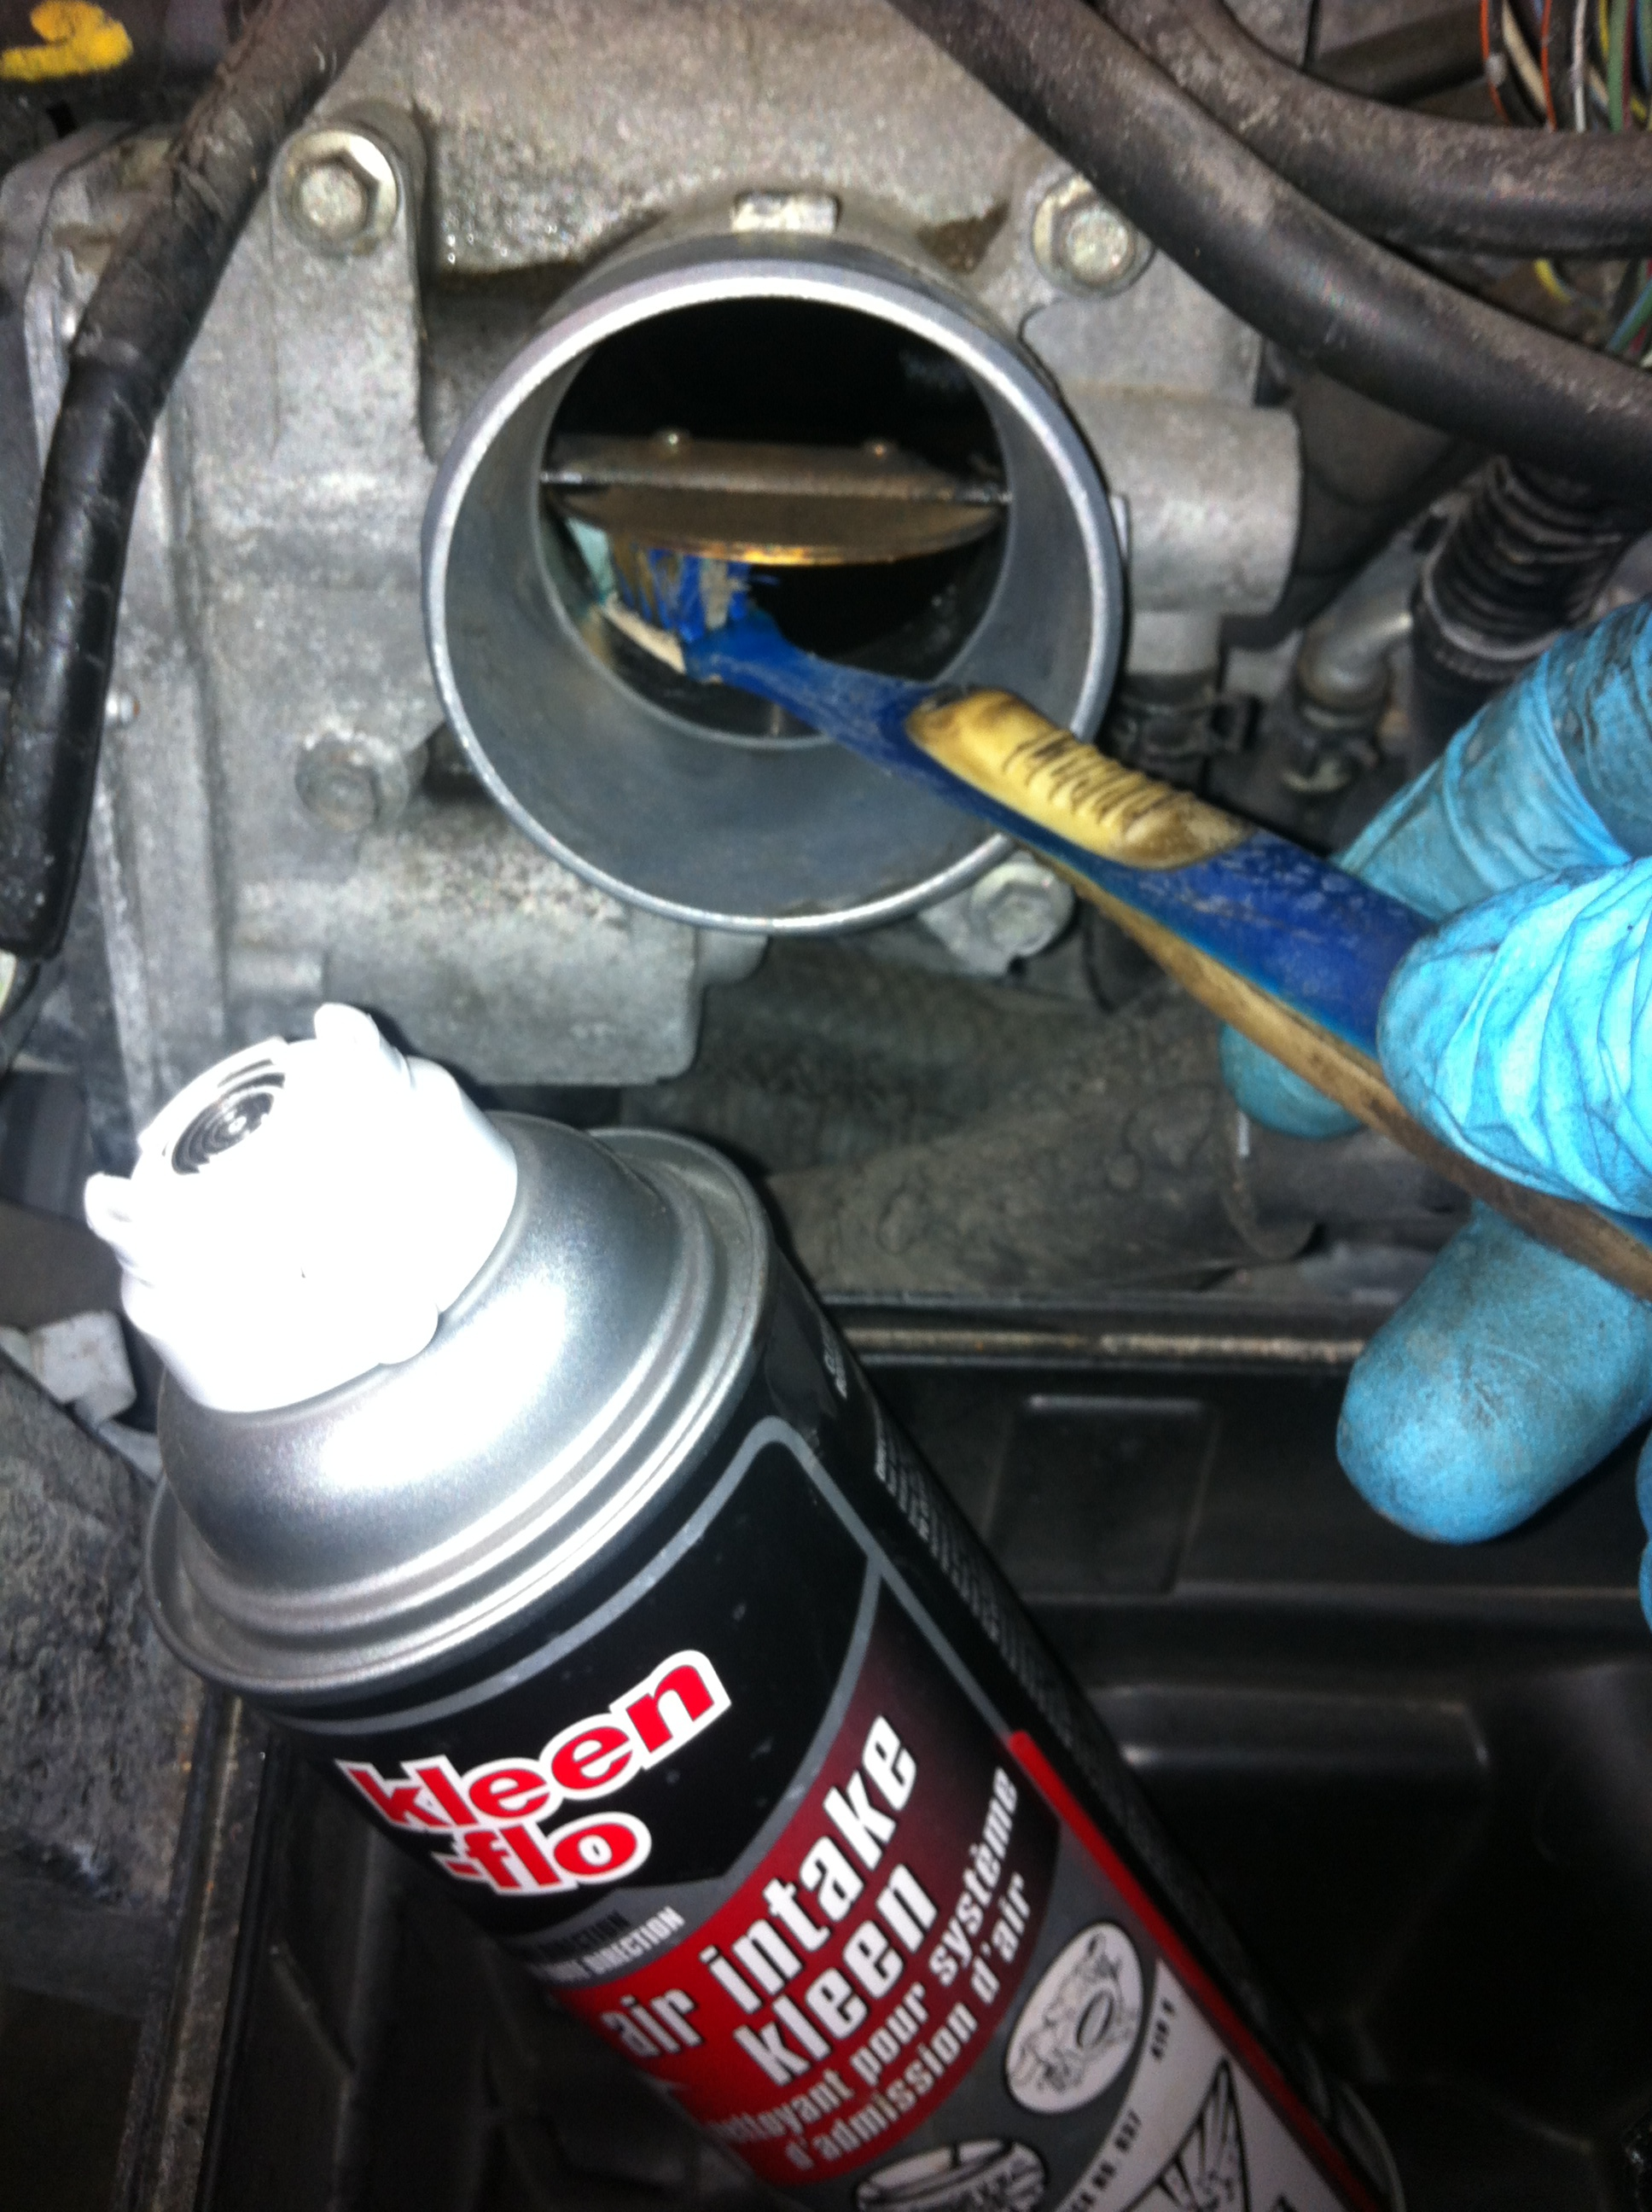 Throttle body and induction system cleaning service